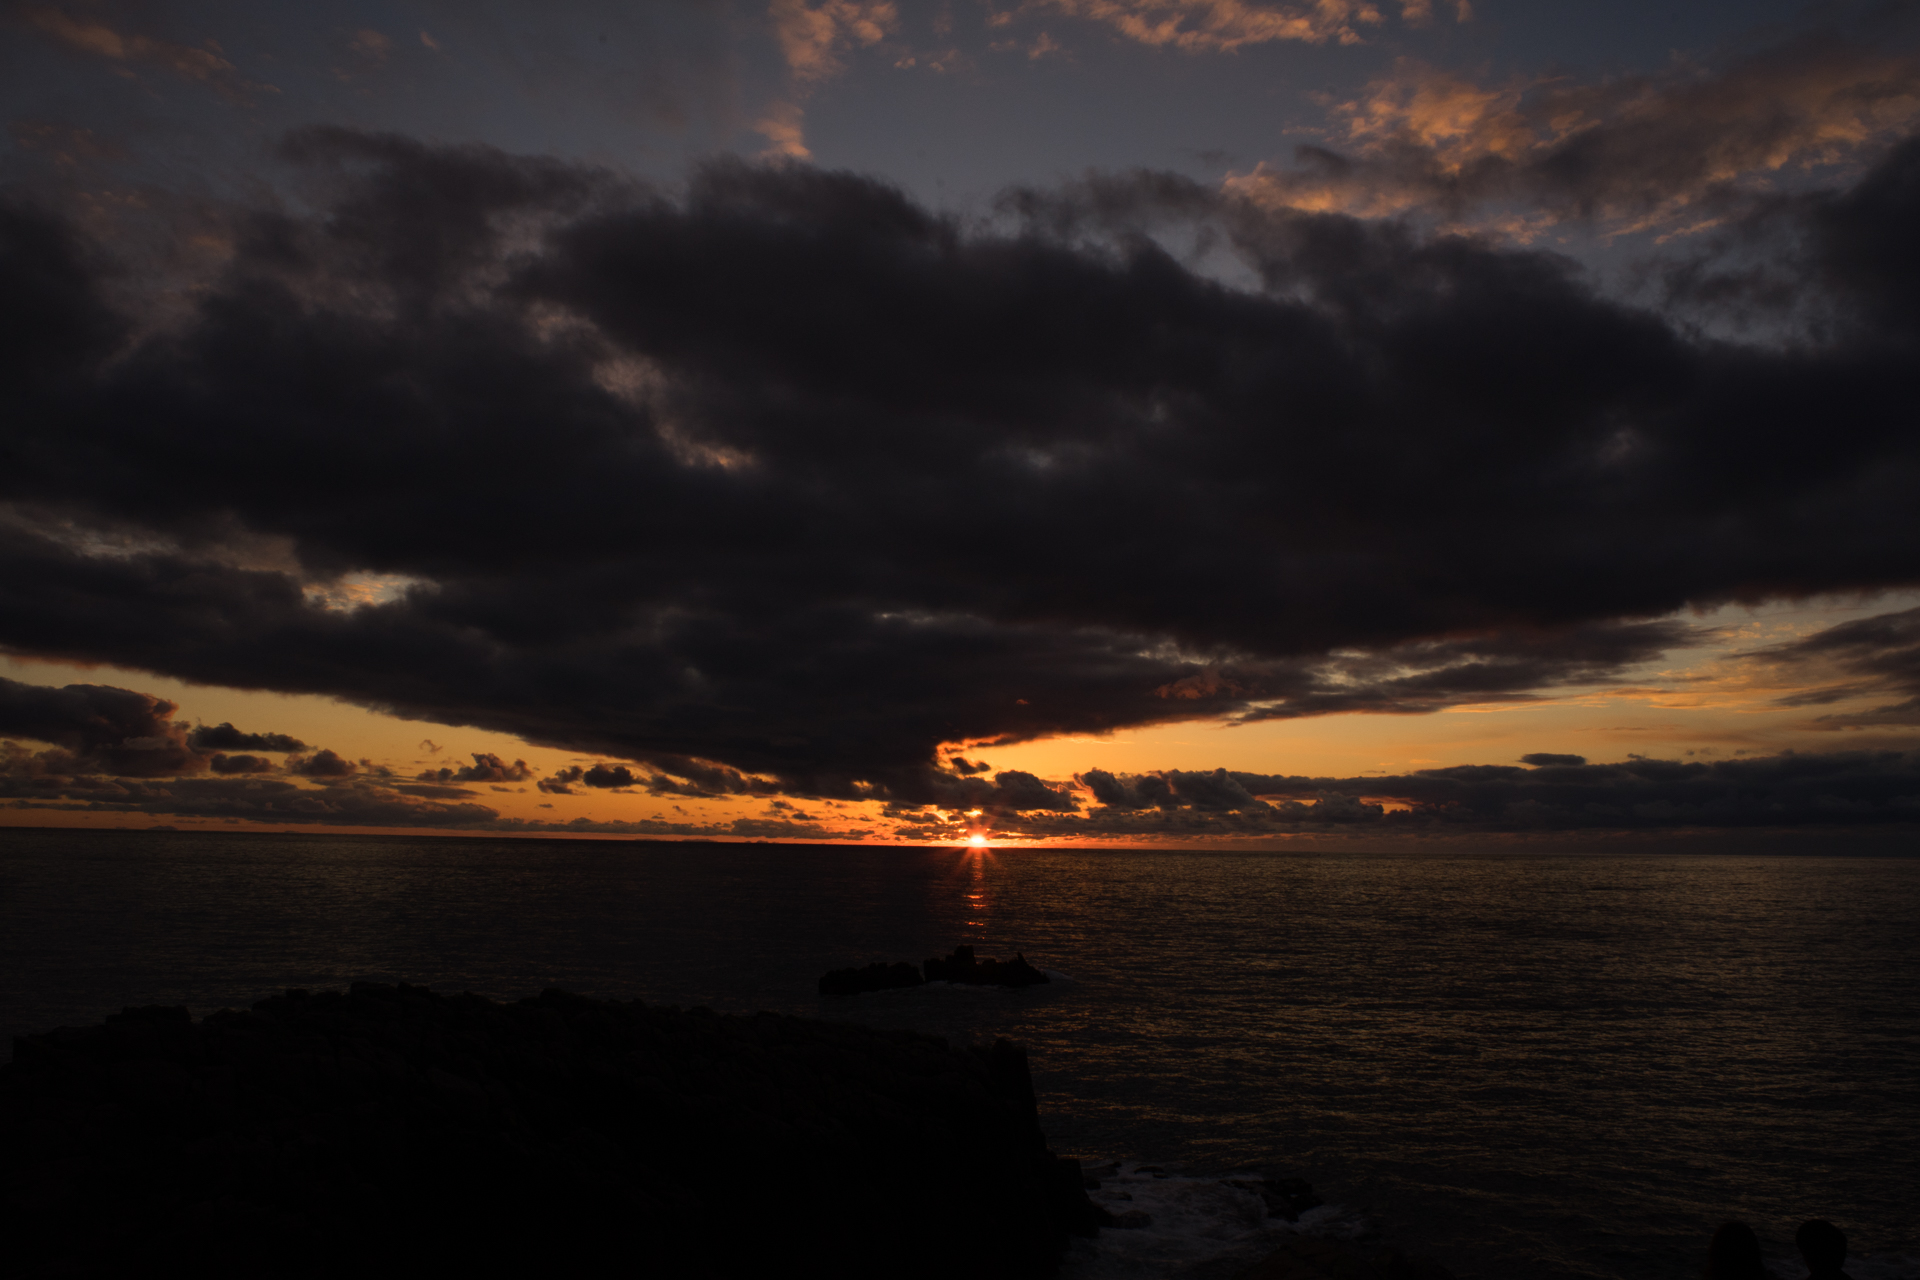 東尋坊 夕景 SMC TAKUMAR 28mm F3.5 作例